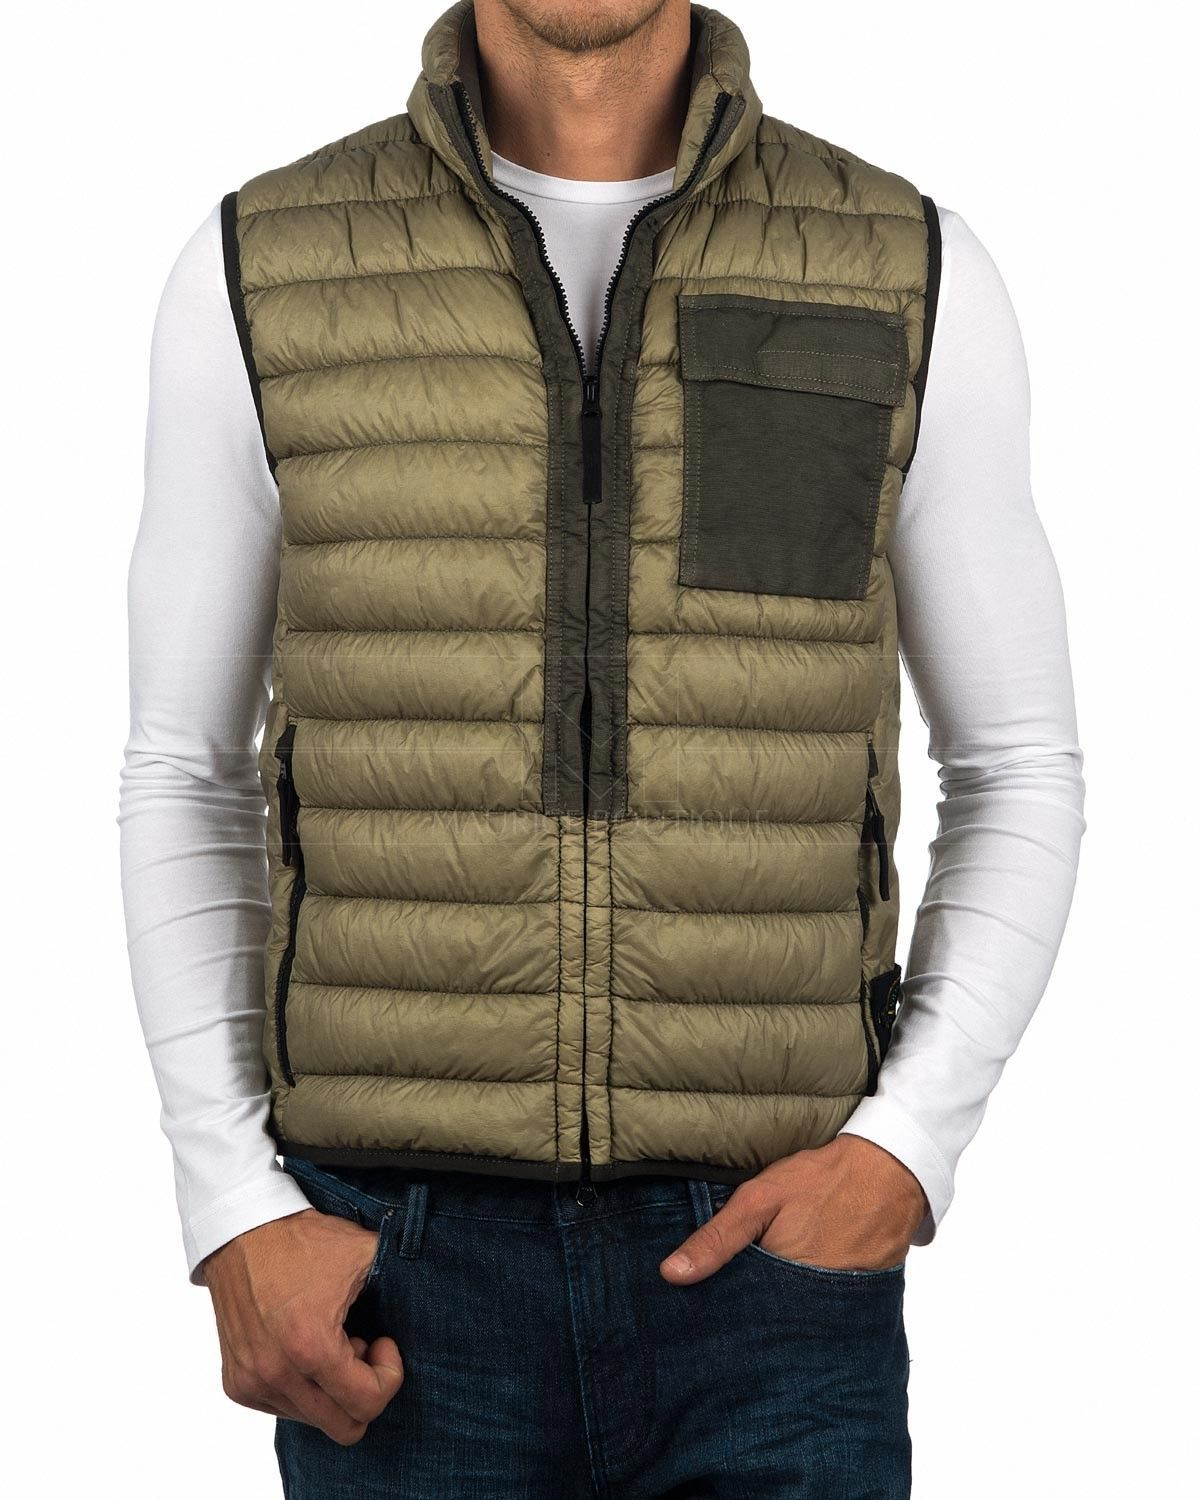 929ffdf4e8a89 Stone Island Gilet - Garment Dyed Micro Yarn Down Packable - Olive ...